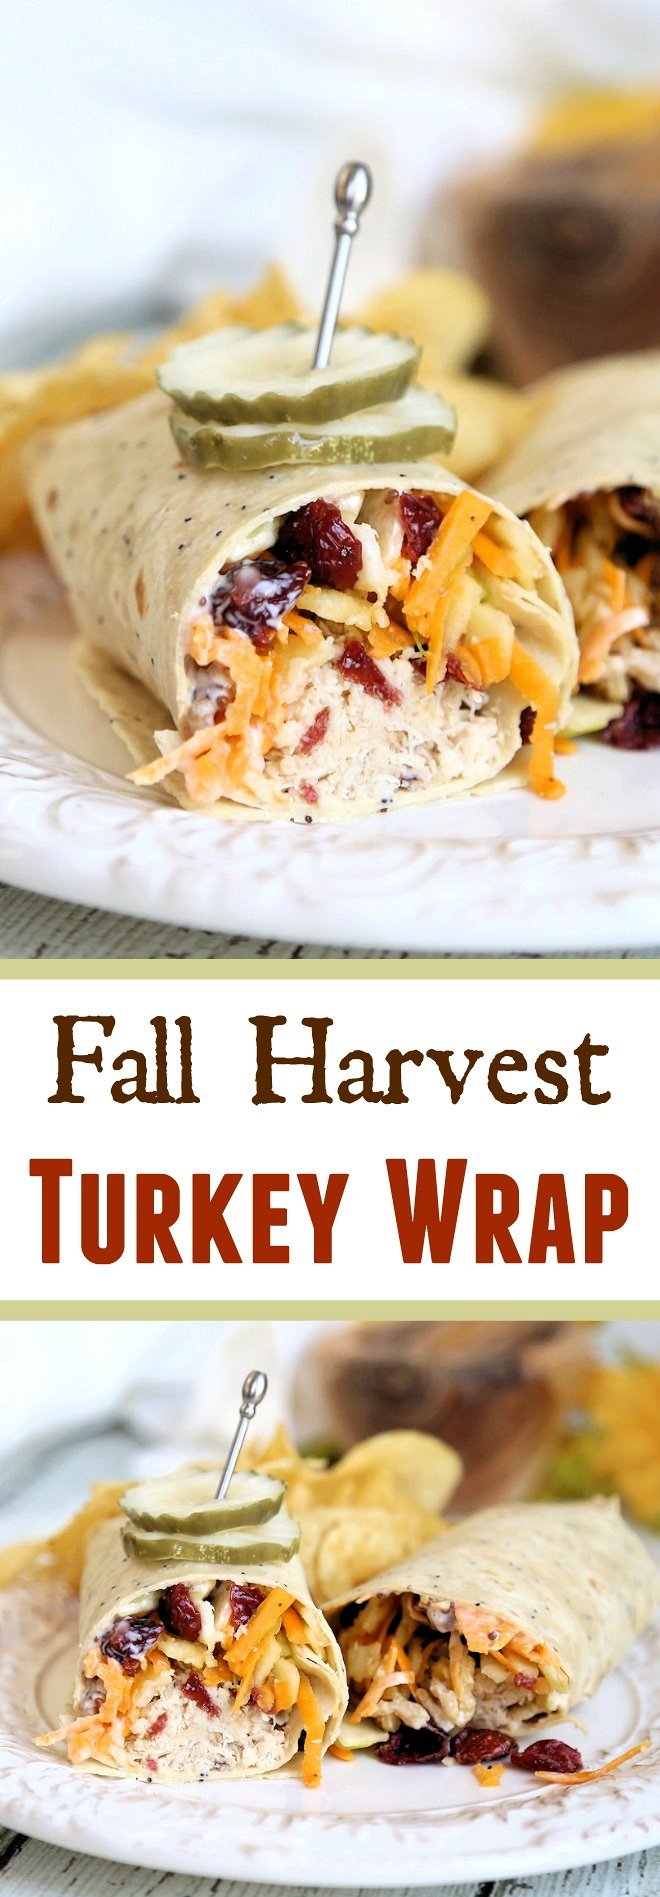 Fall Harvest Turkey Wrap - New England fall harvest flavors with maple honey turkey in a wrap